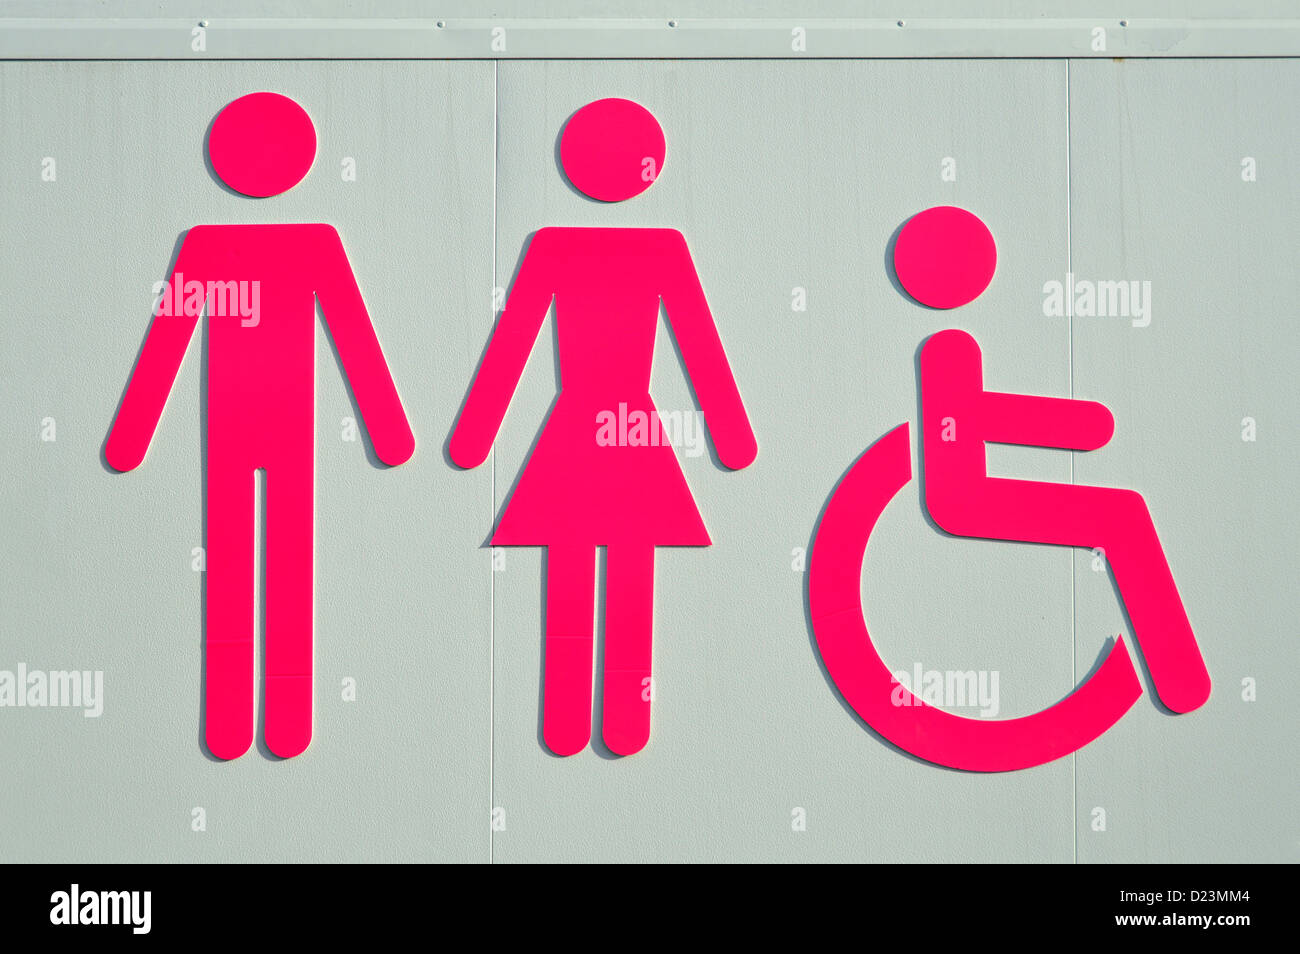 Stock Photo   toilet sign for ladies gents and disabled facilities. Toilet Sign For Ladies Gents And Disabled Facilities Stock Photo